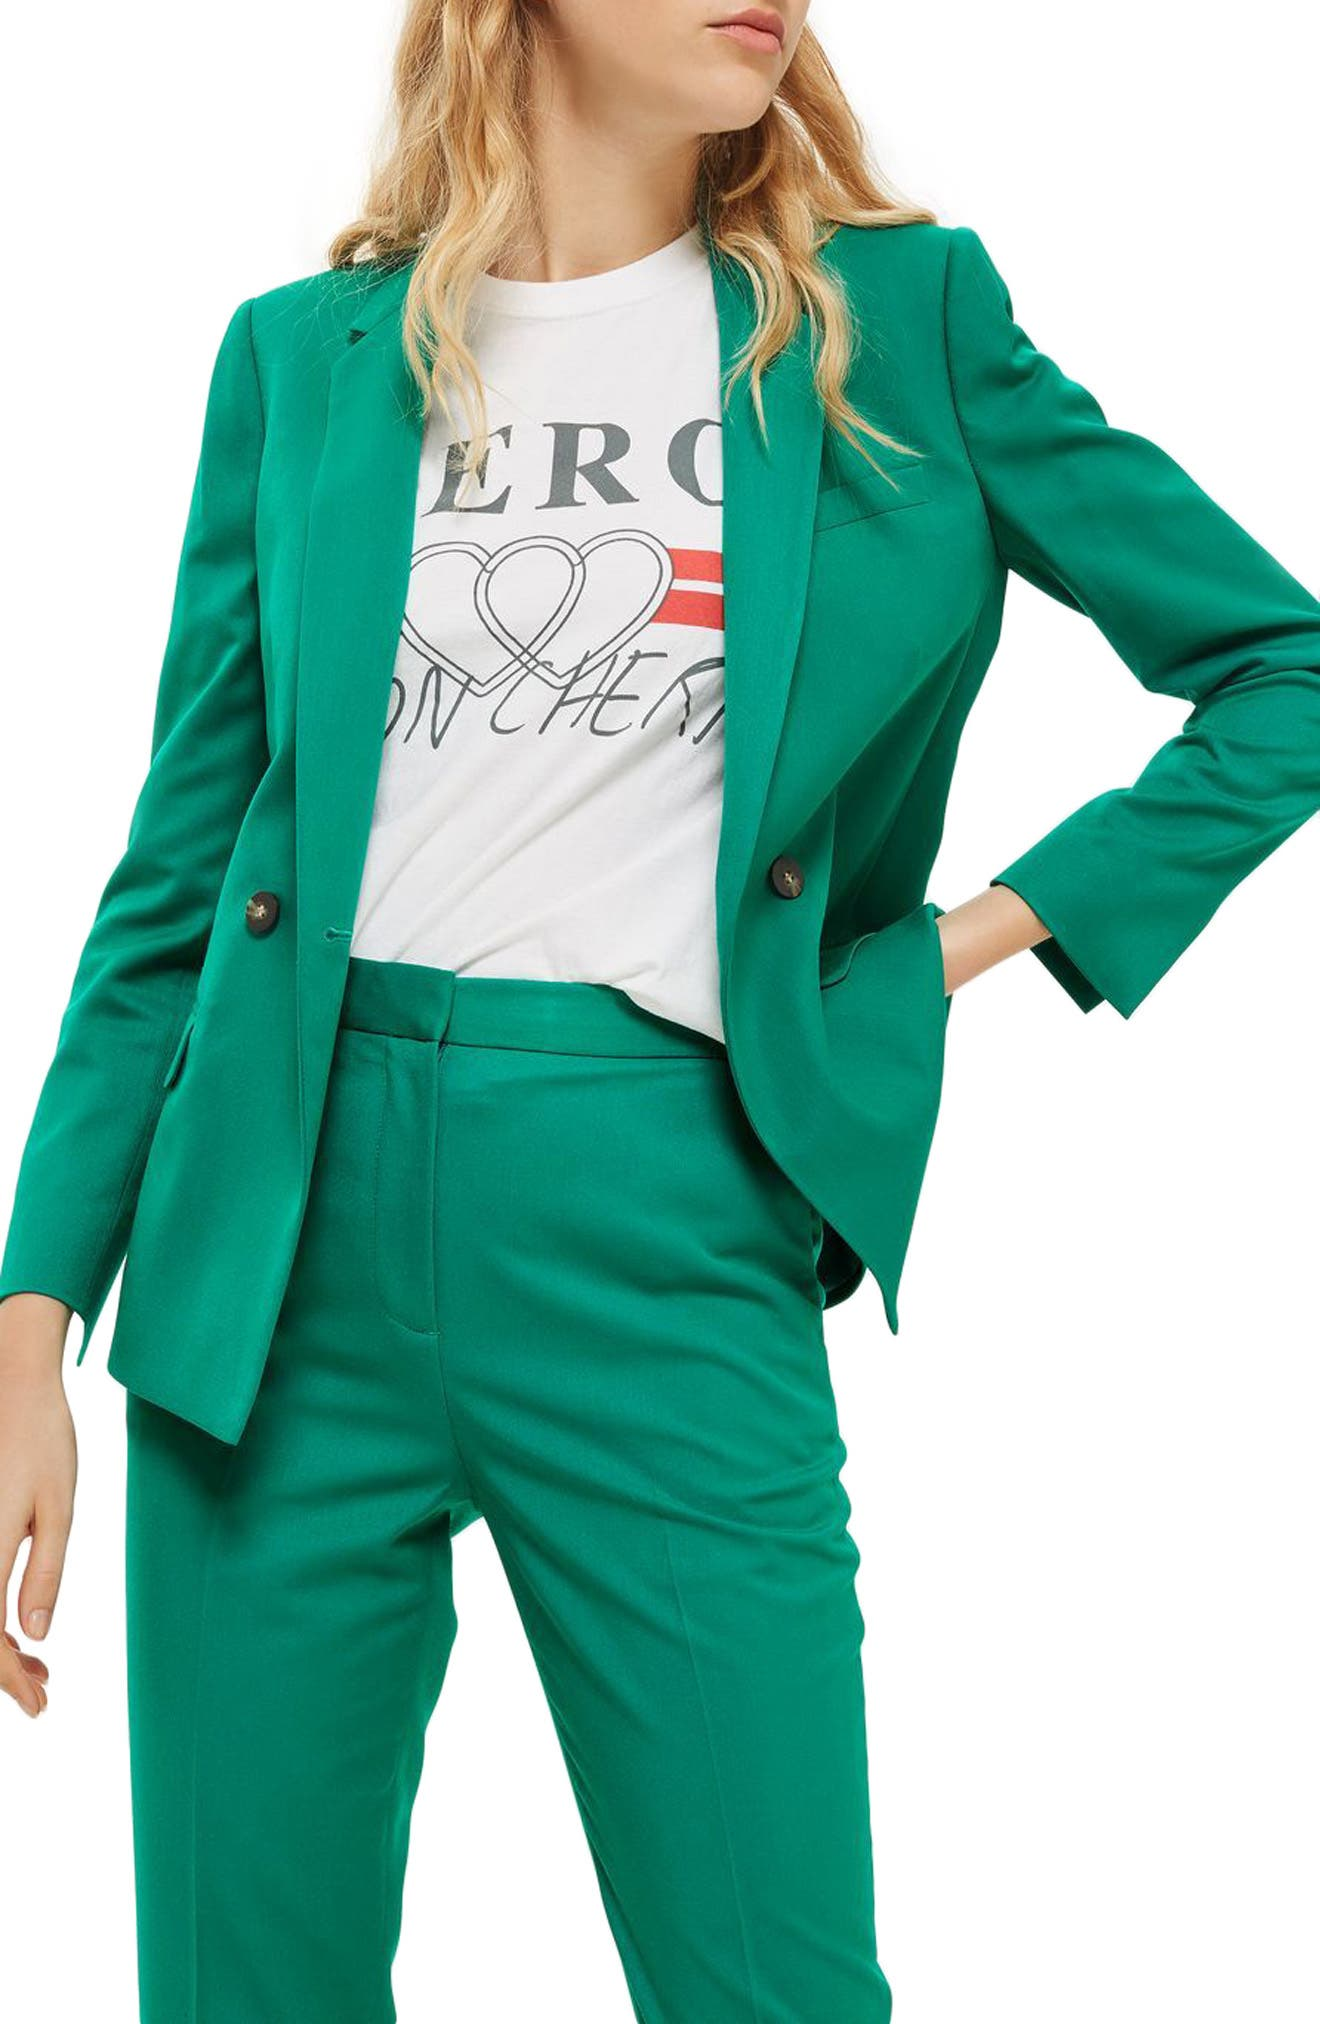 Double Breasted Suit Jacket,                             Main thumbnail 1, color,                             300